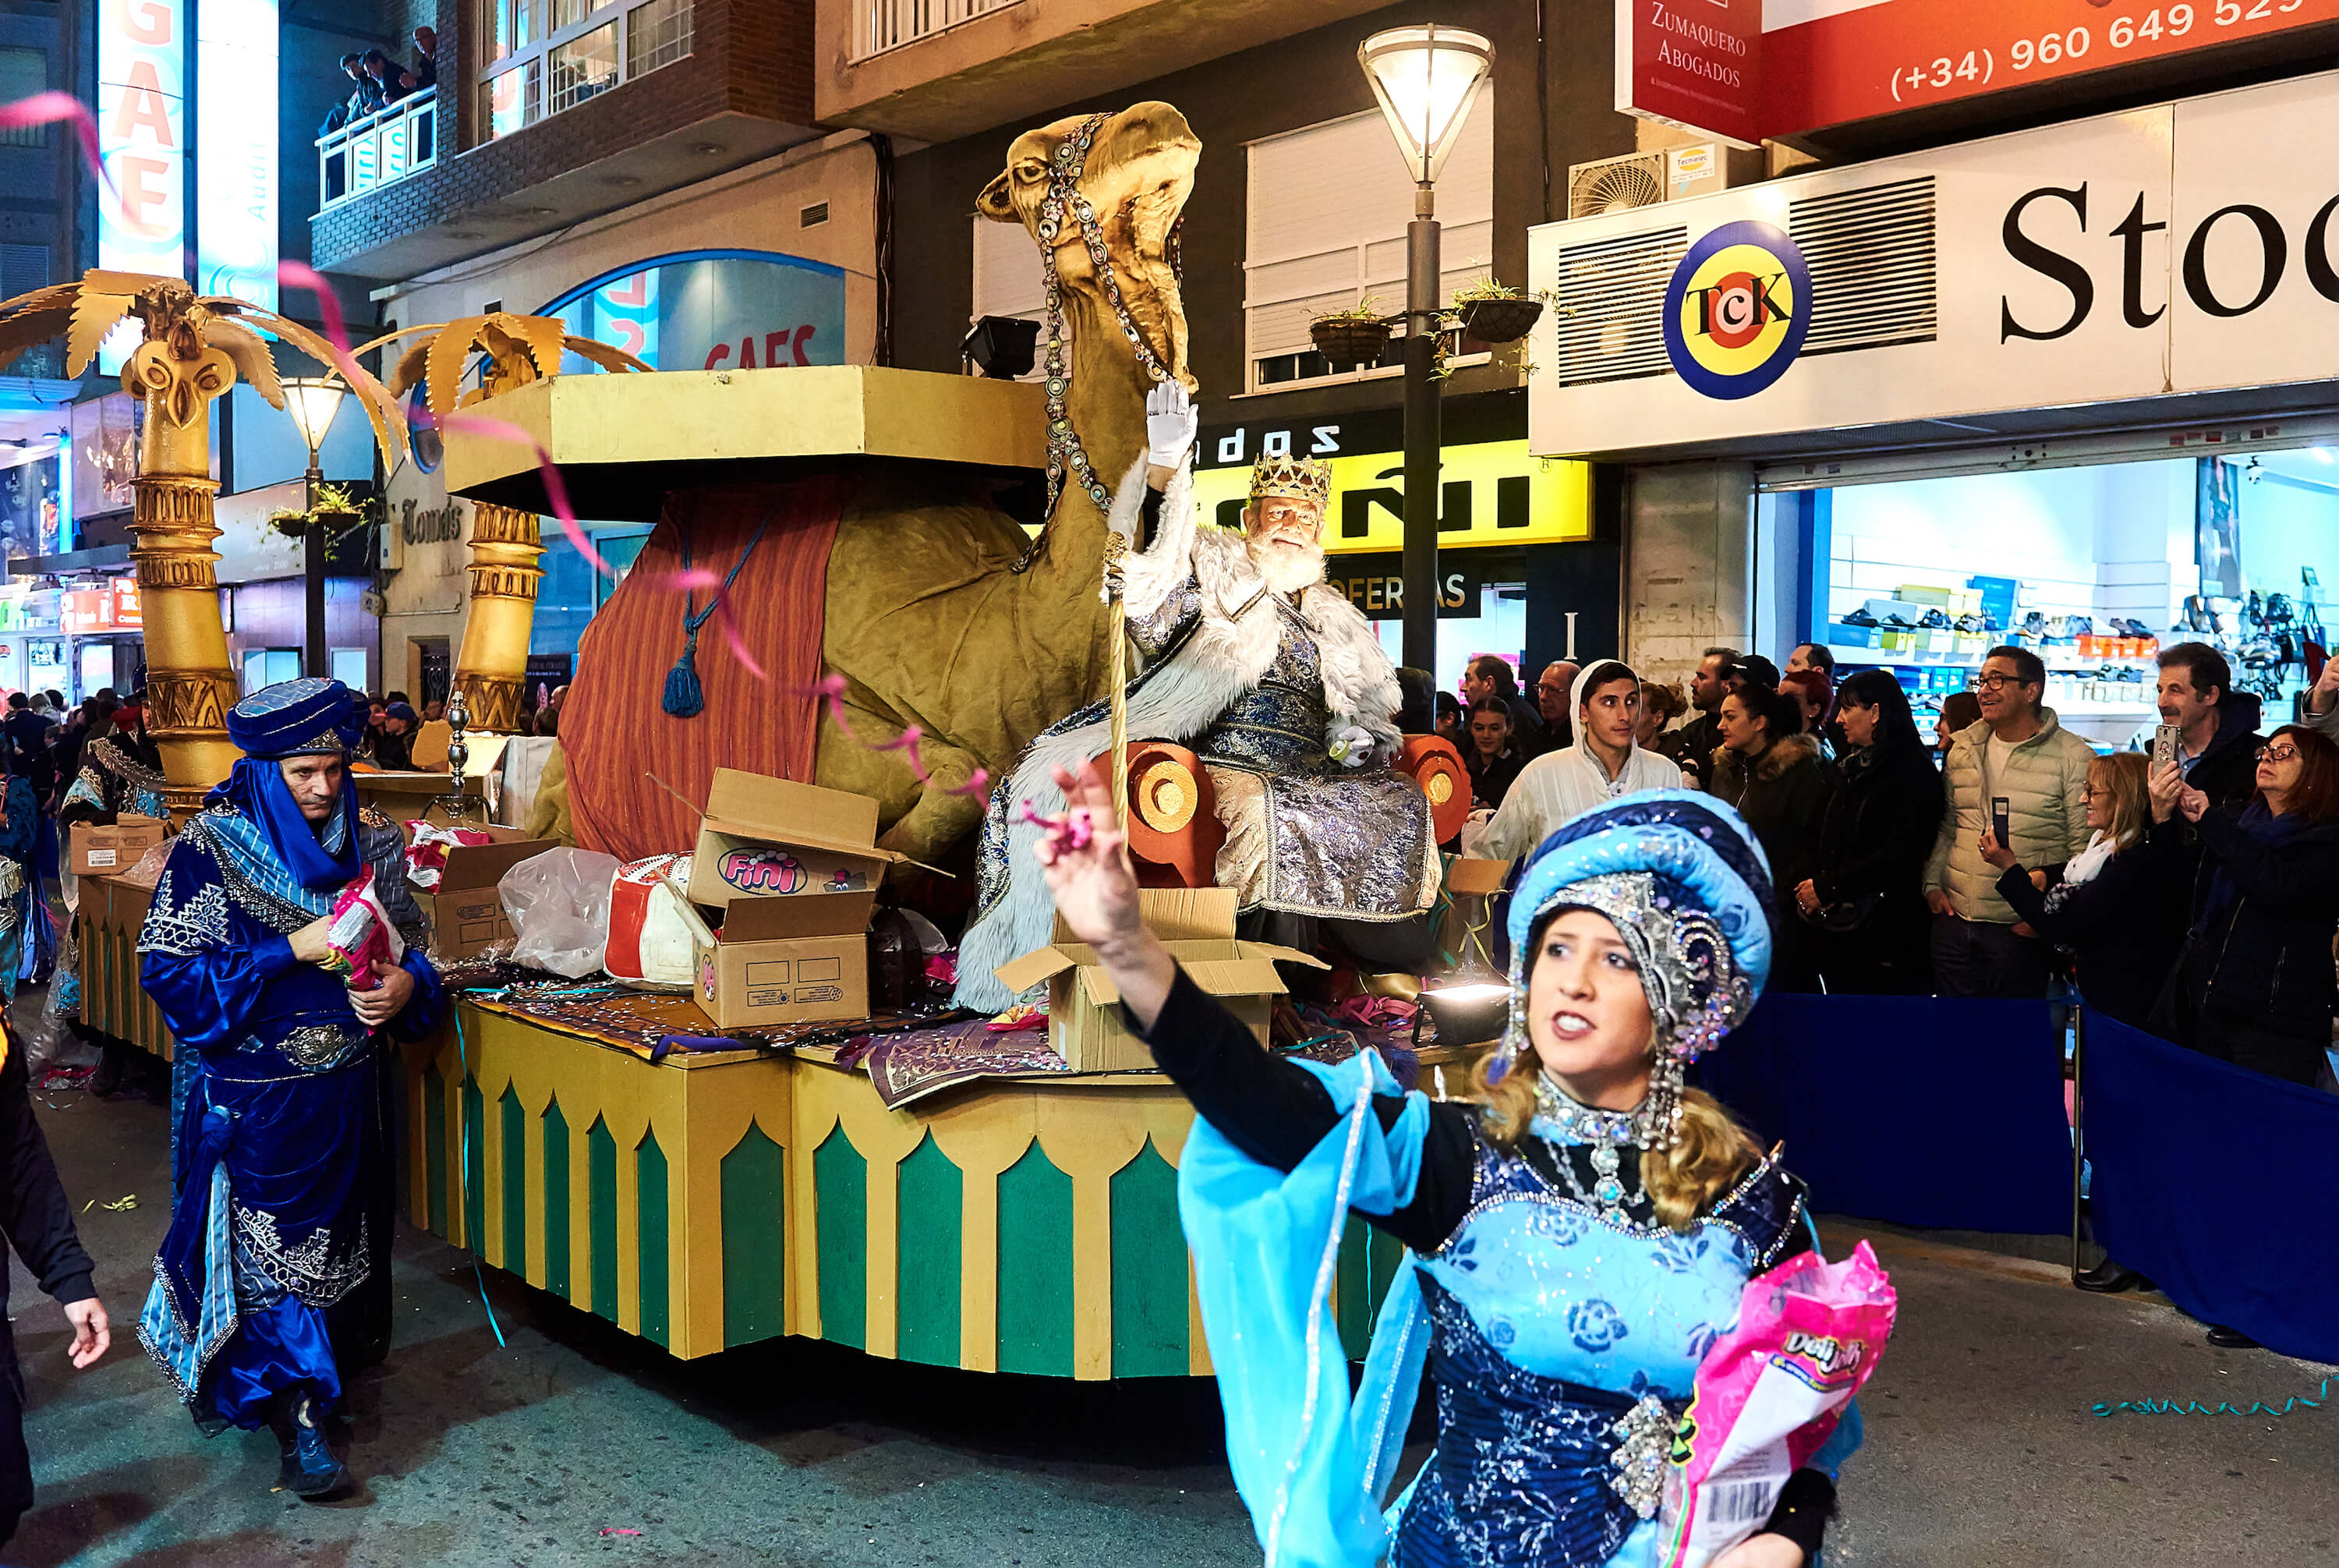 Christmas traditions in Barcelona - The Three Kings Parade